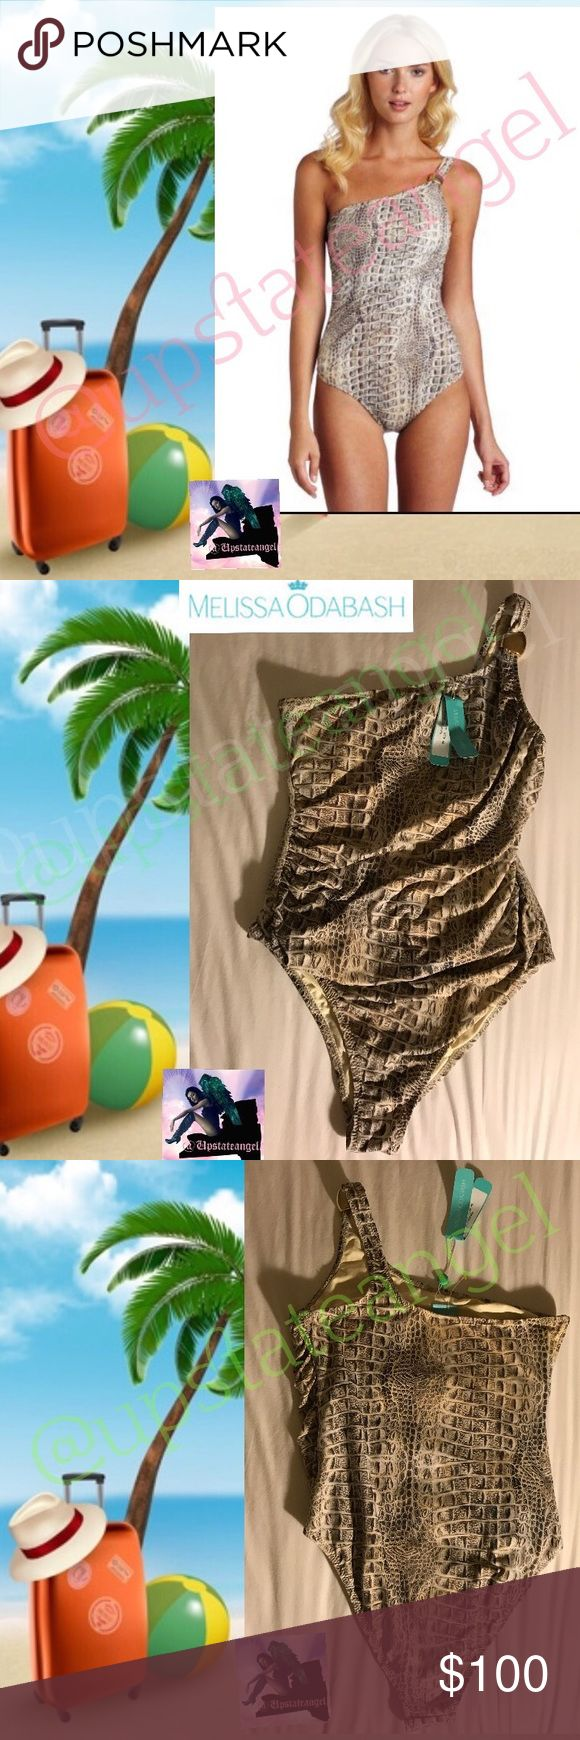 """Melissa Odabash Arizona Croc Print Swimsuit NWT 10 Beautiful Arizona One Piece from exclusive swimwear designer Melissa Odabash in stunning crocodile print. Size 46. According to Melissa Odabash Size chart is a """"10"""". -  Arizona swimsuit - Stretch-polyamide- Oversized gold bead at one shoulder, internal bust support, ruched, fully lined- 90% polyamide, 10% elastane- Hand wash. NWT.   Vogue has stated the designer created the """"Ferraris of swimwear."""". 🚫trades. Please ask all questions prior to…"""